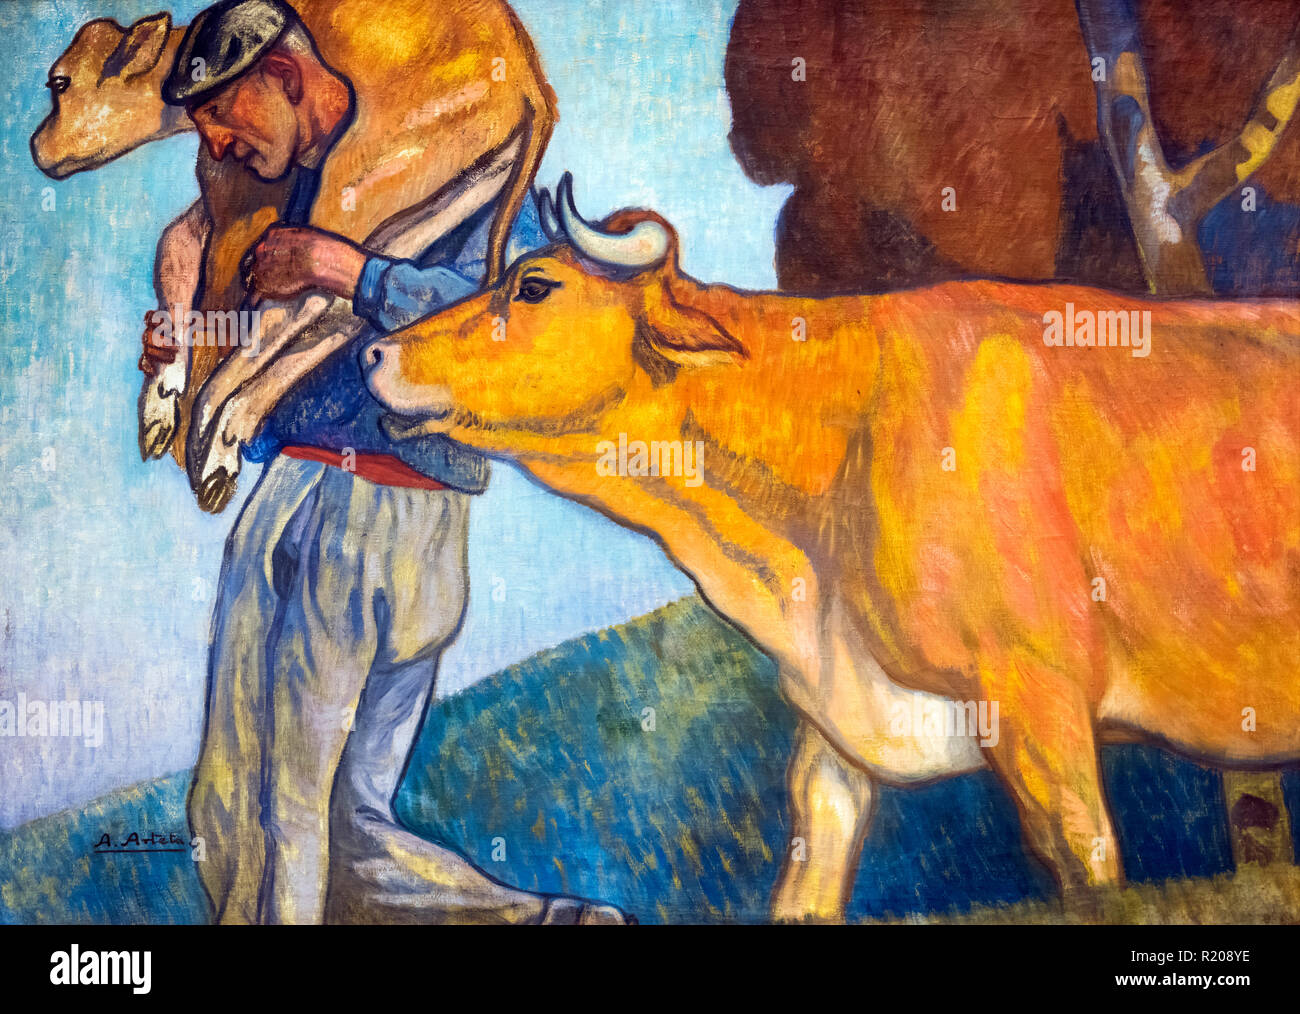 Countryman with a Cow and a Calf (Campesino con una Vaca y una Ternera) by Aurelio Arteta Errasti (1879-1940) , oil on canvas, c.1913-15. Painting in the Allegorical Cycle of Food. - Stock Image